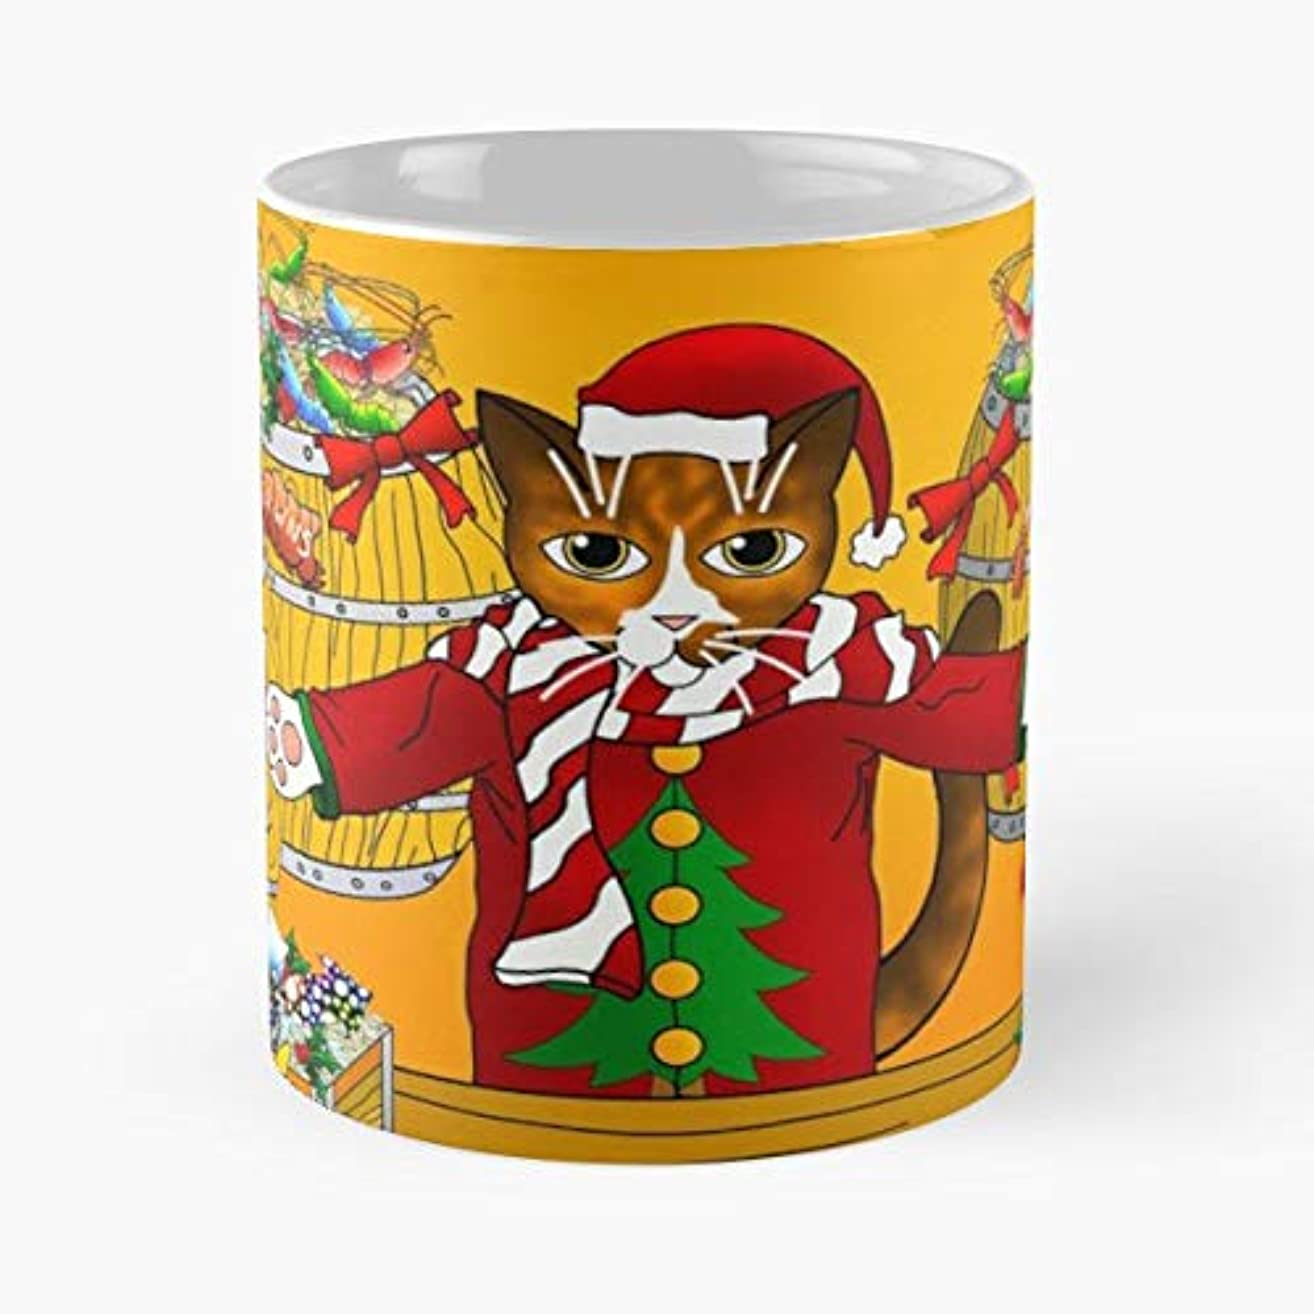 Christmas Family Shopping Holidays - 11 Oz Coffee Mugs Ceramic The Best Gift For Holidays, Item Use Daily